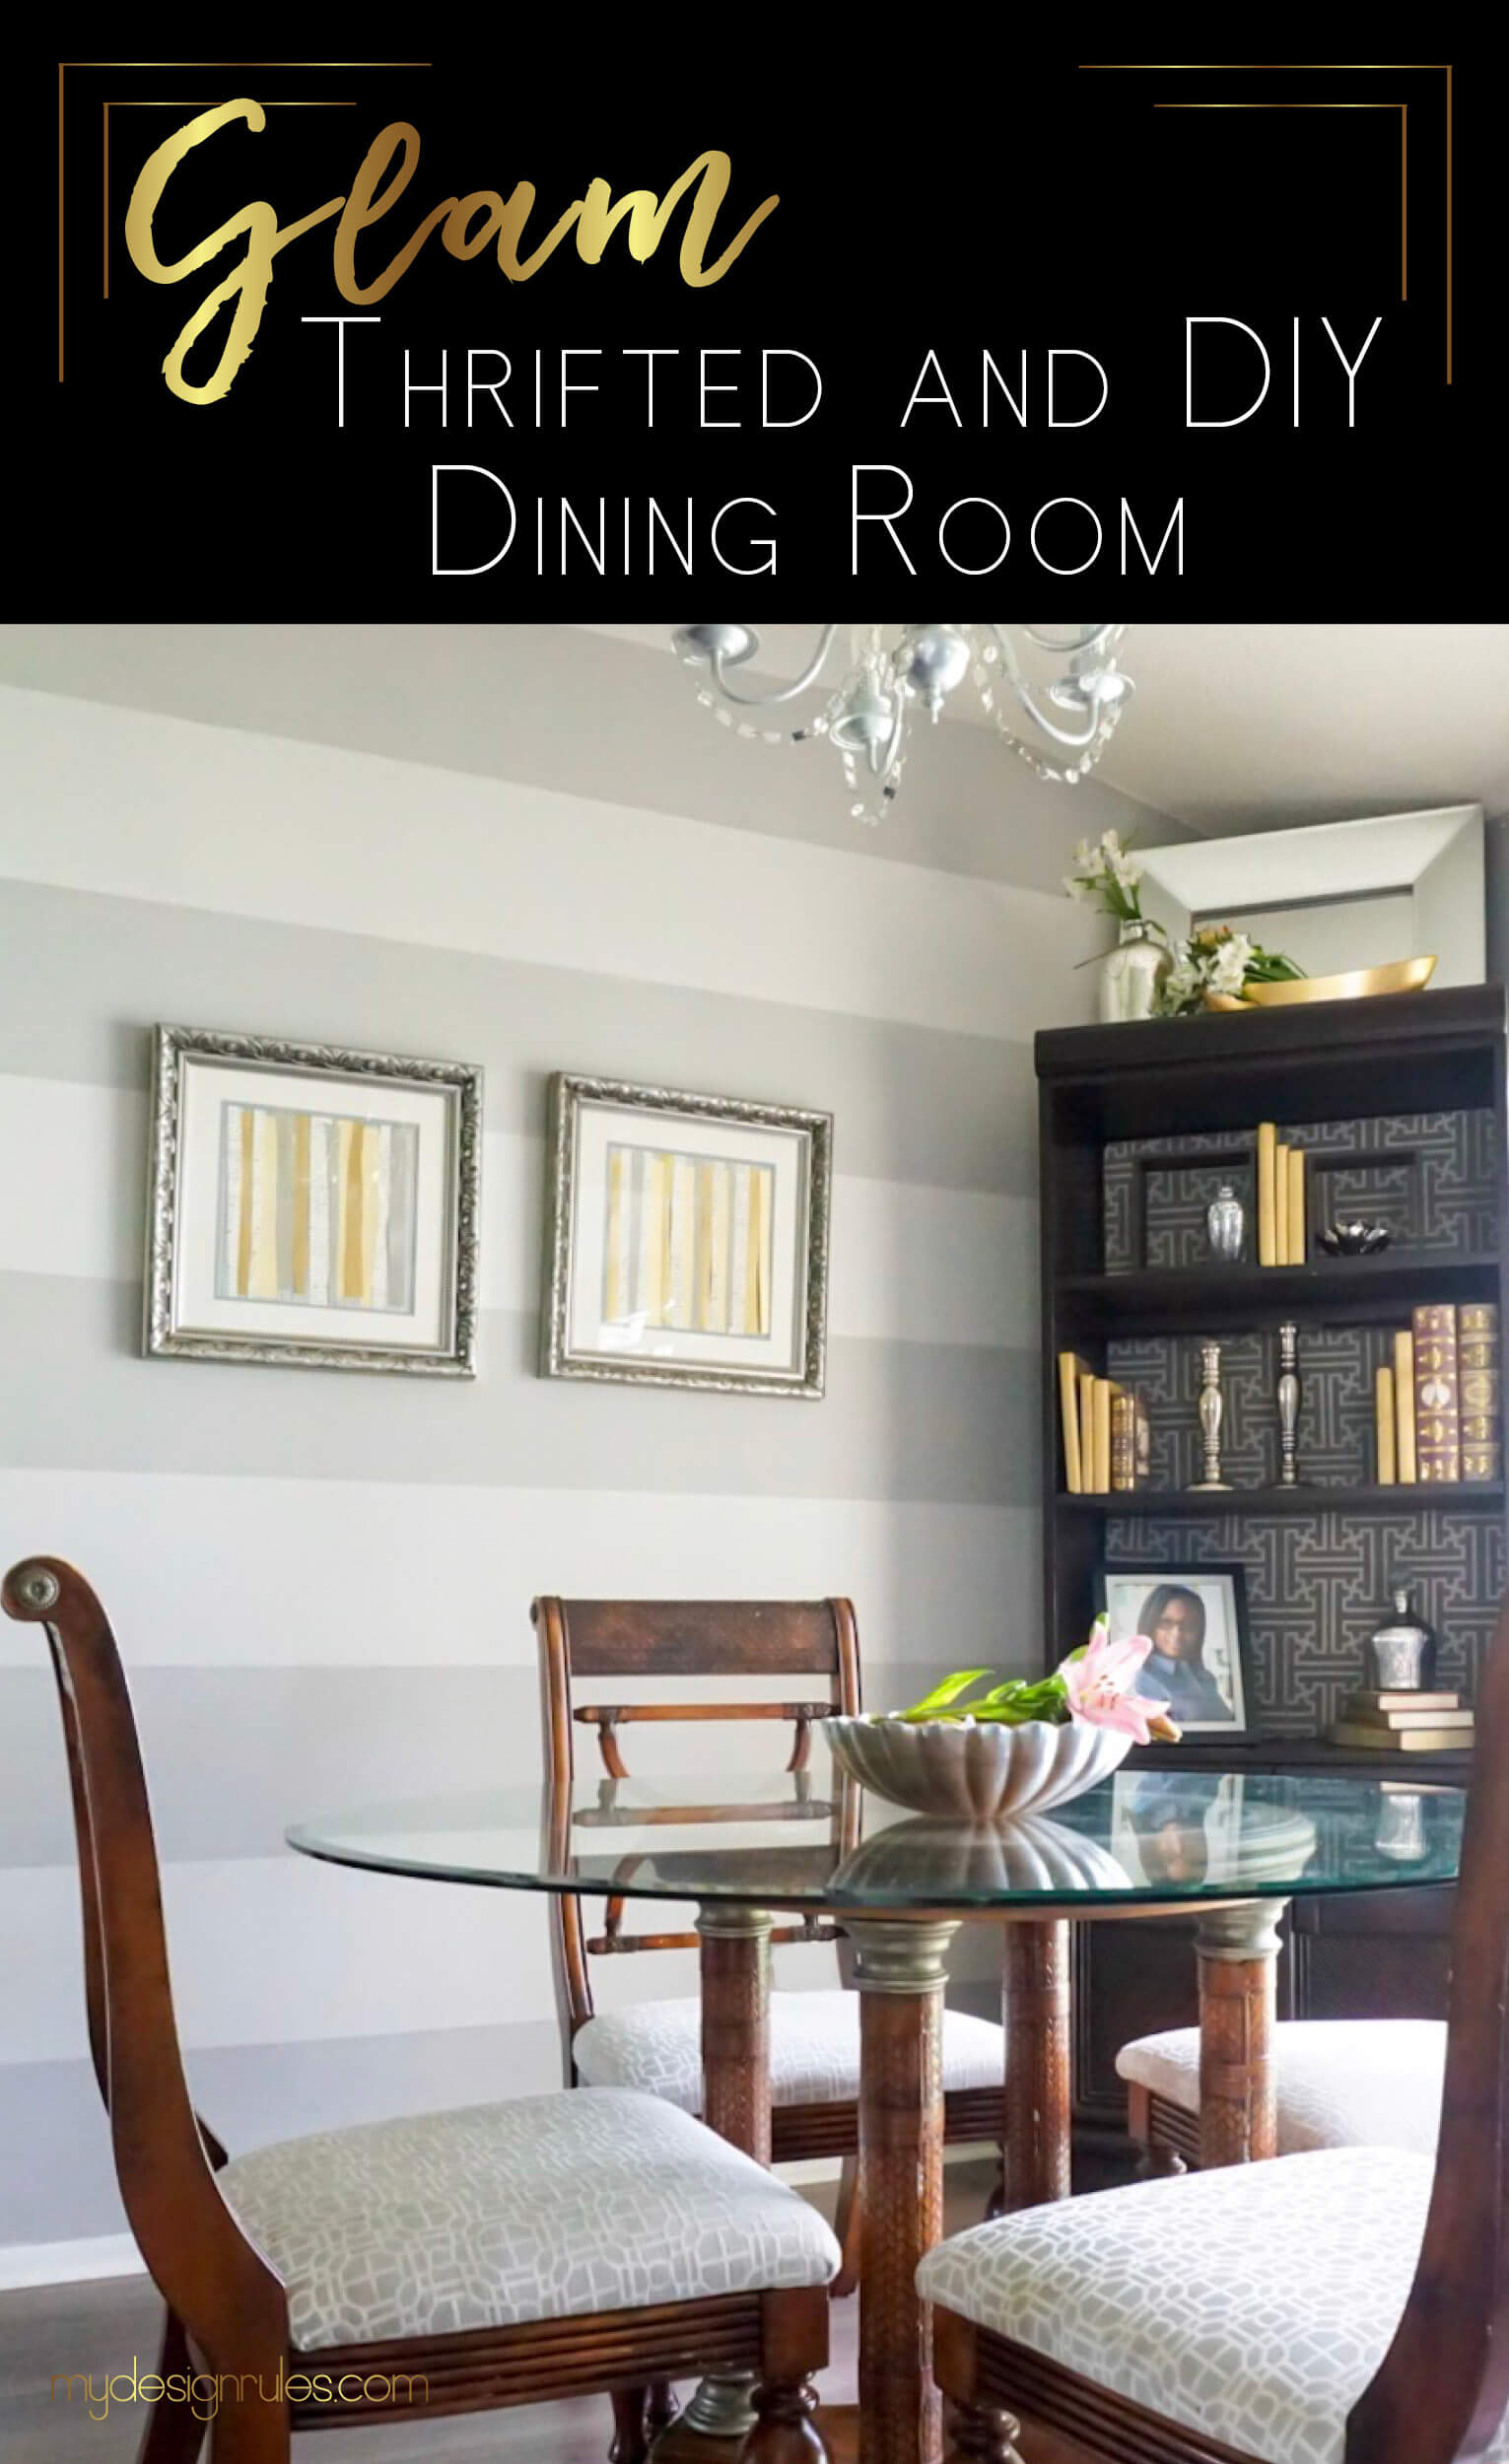 Give your dining room a makeover on a budget. Decorate a fabulous room on a budget.